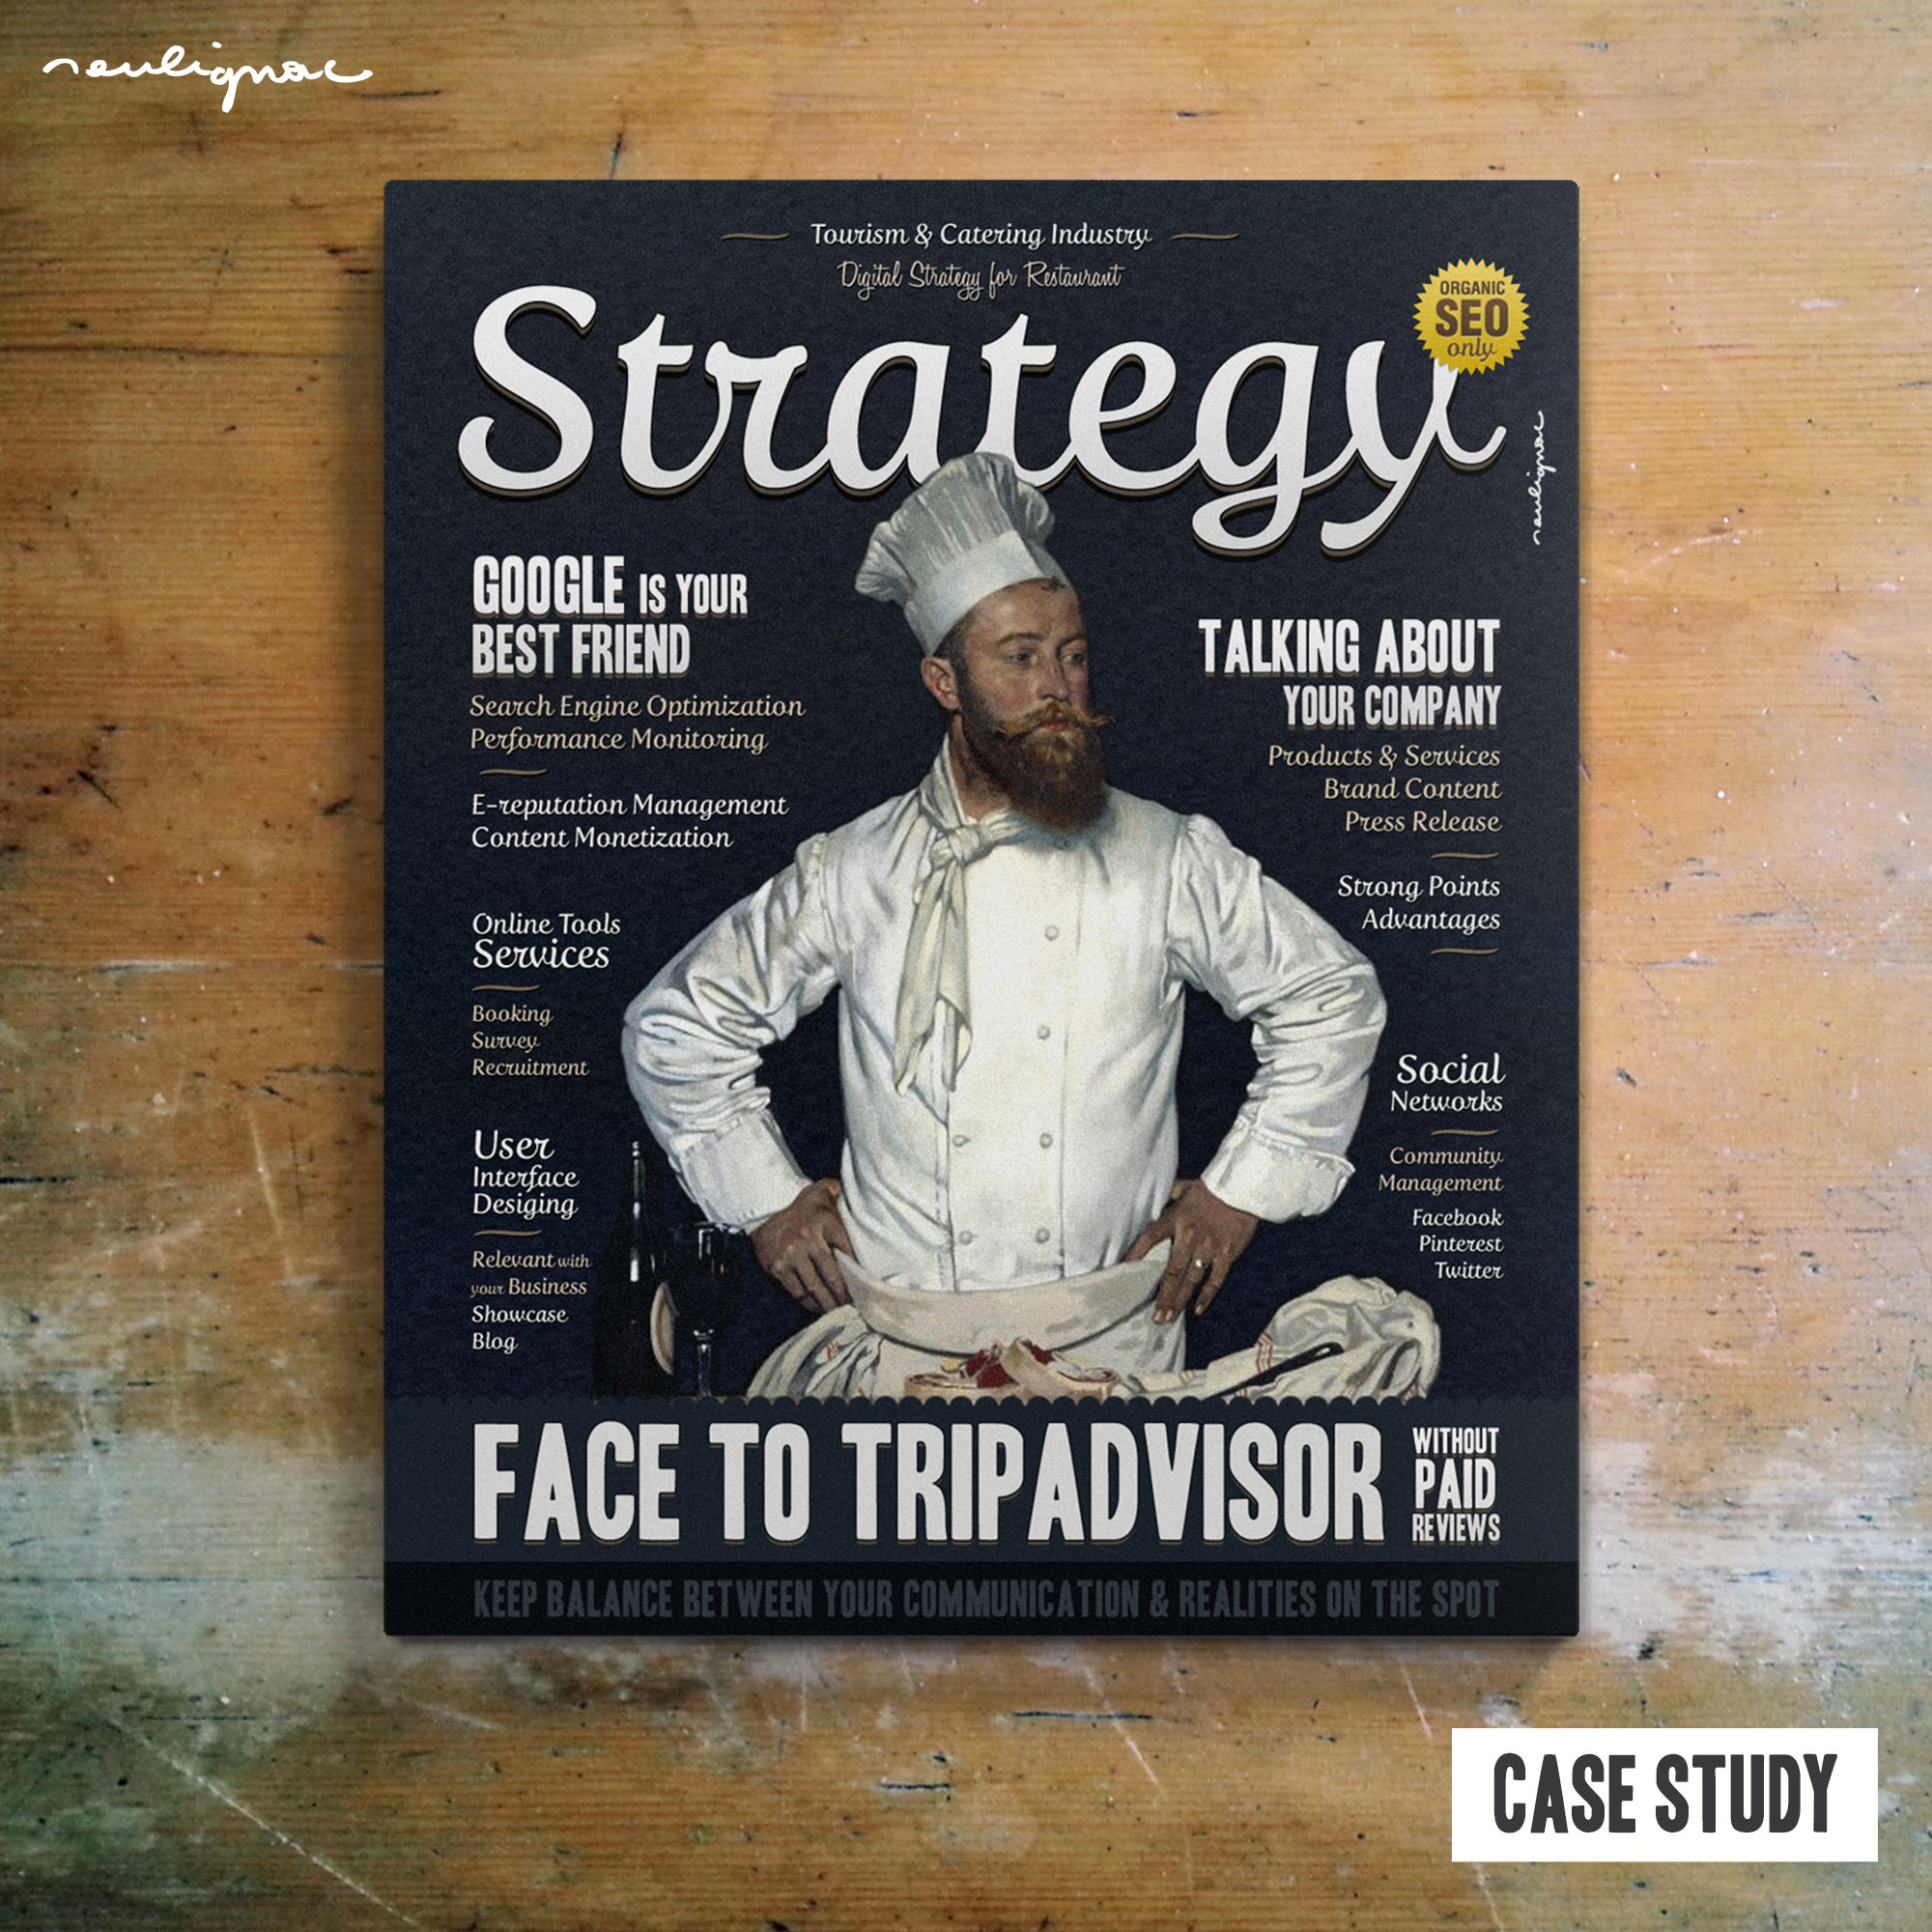 François Soulignac : Web/Digital Art Director - Digital Strategy for Restaurant (Case study)